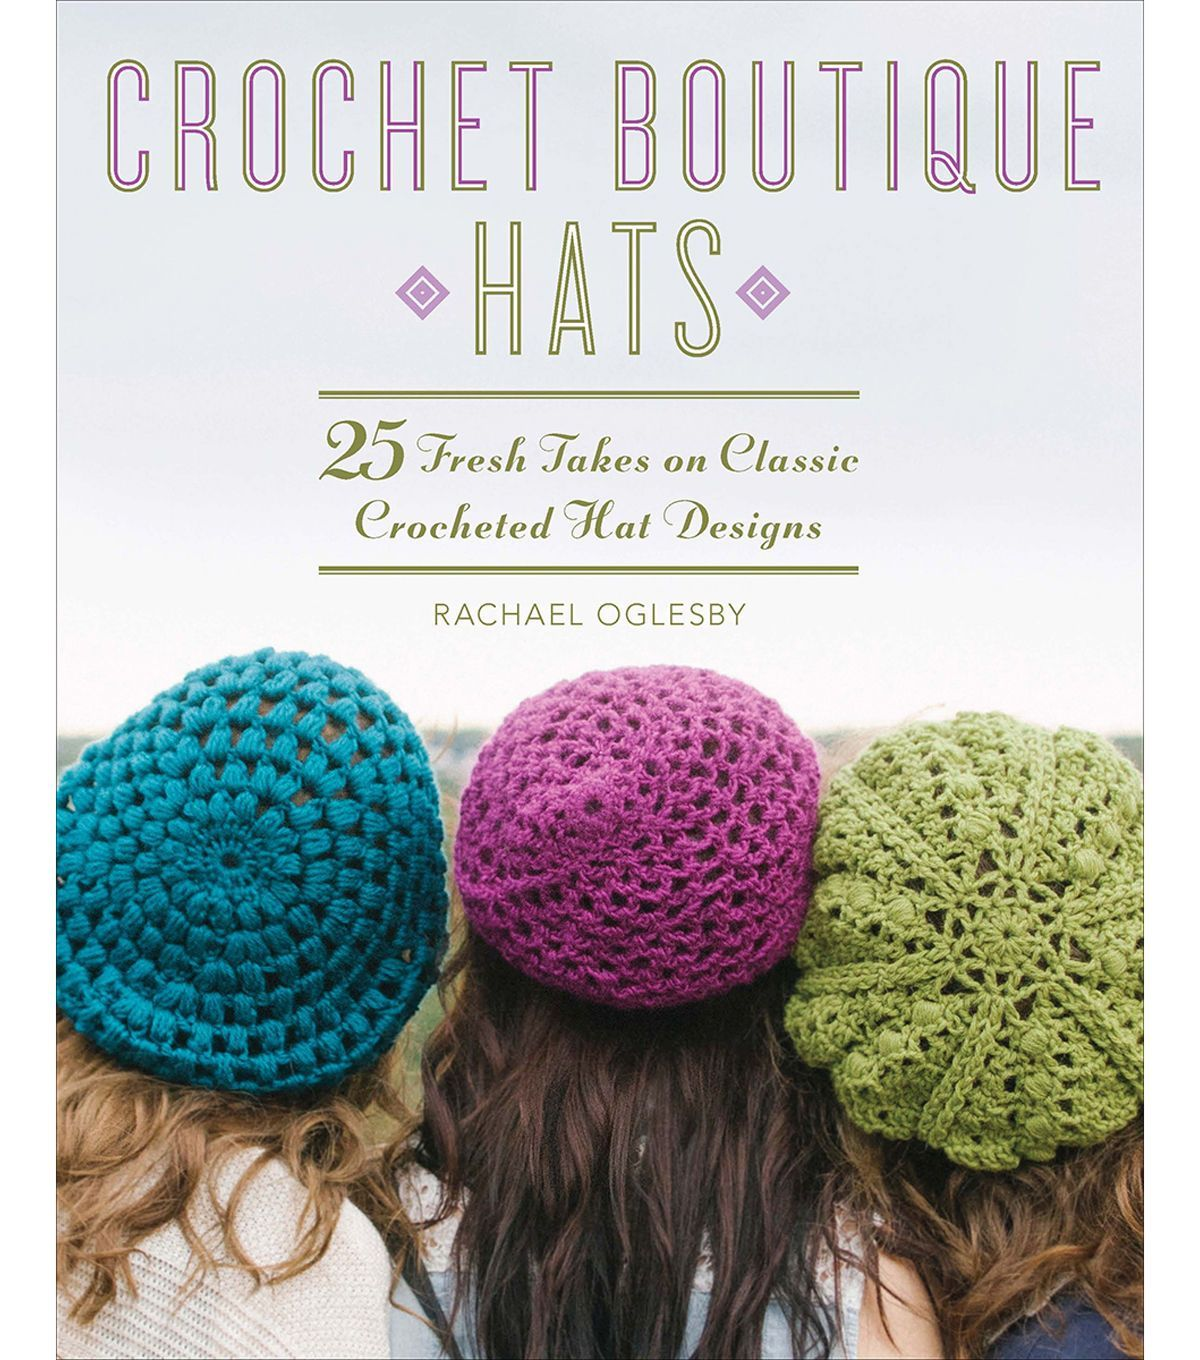 Crochet Boutique Hats | Gorros, Tejido y Ganchillo